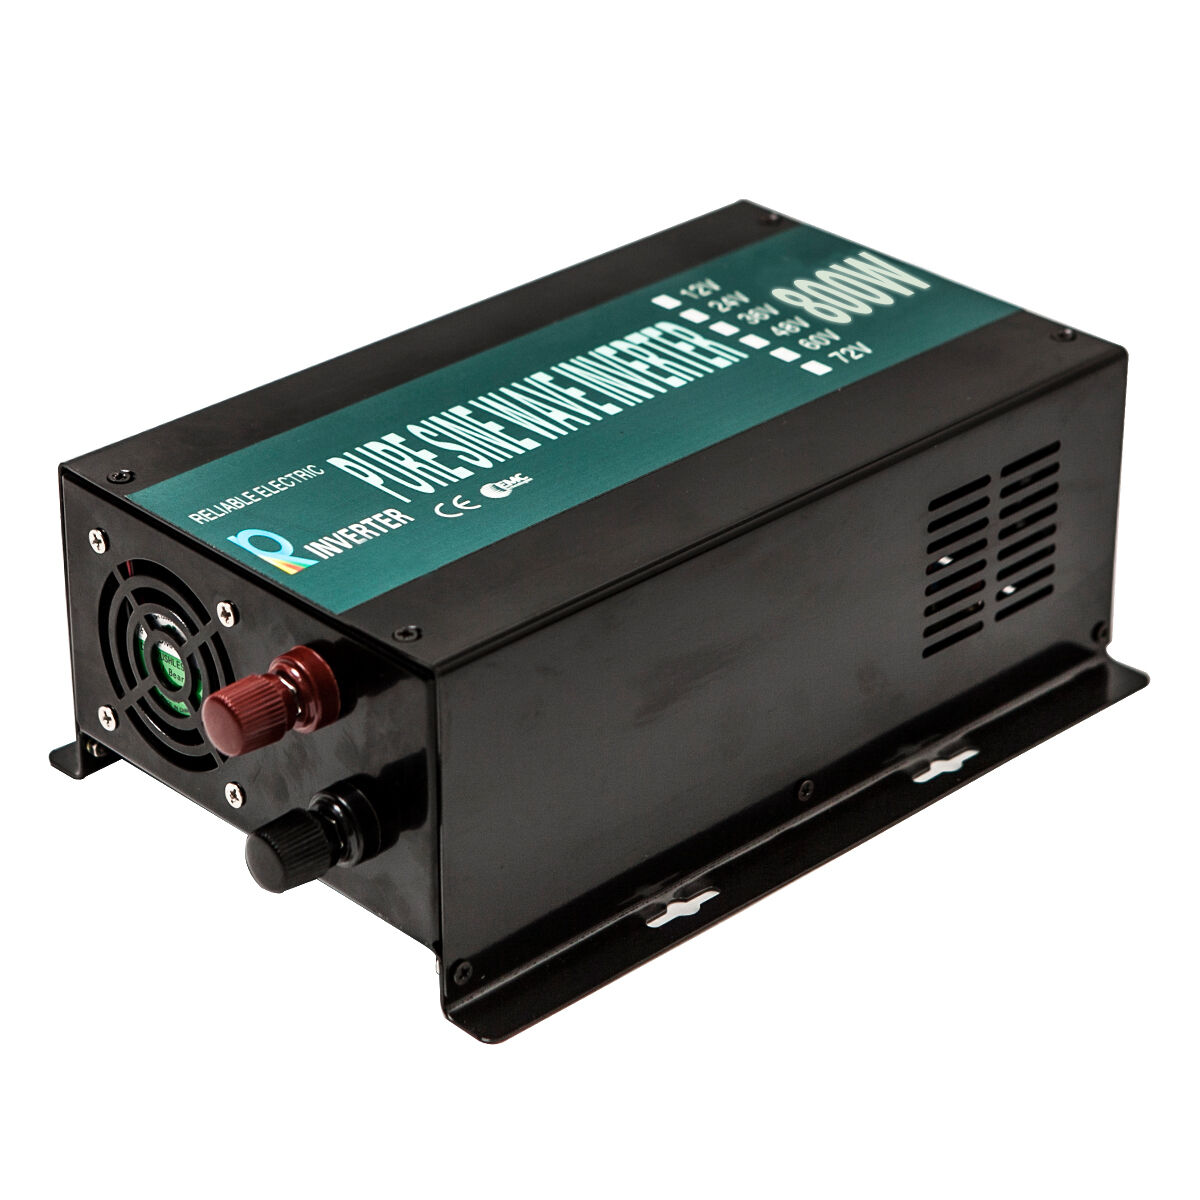 Car Power Inverter 1500 W 60 V à 120 V sinusoïdale pure onduleur Detective comics à AC Convertisseur